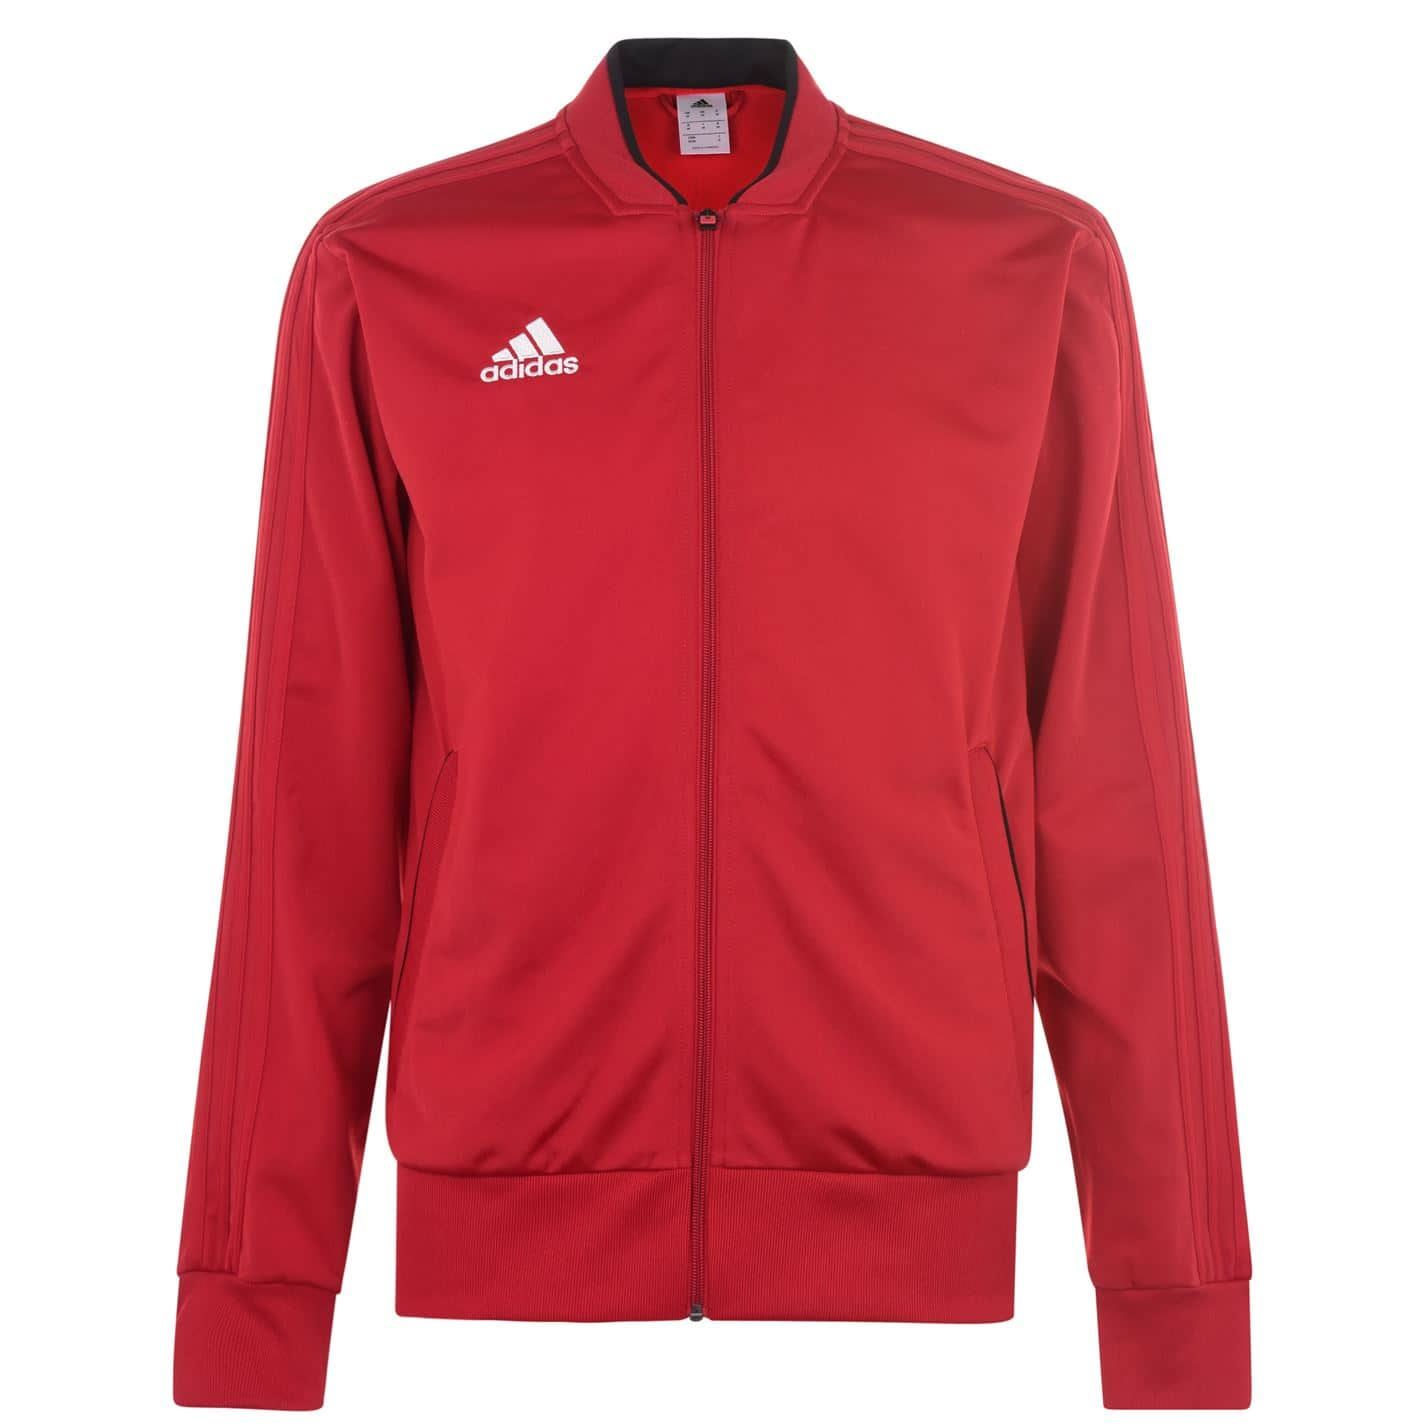 Details about adidas Condivo Tracksuit Jacket Mens RedBlack Football Soccer Track Top